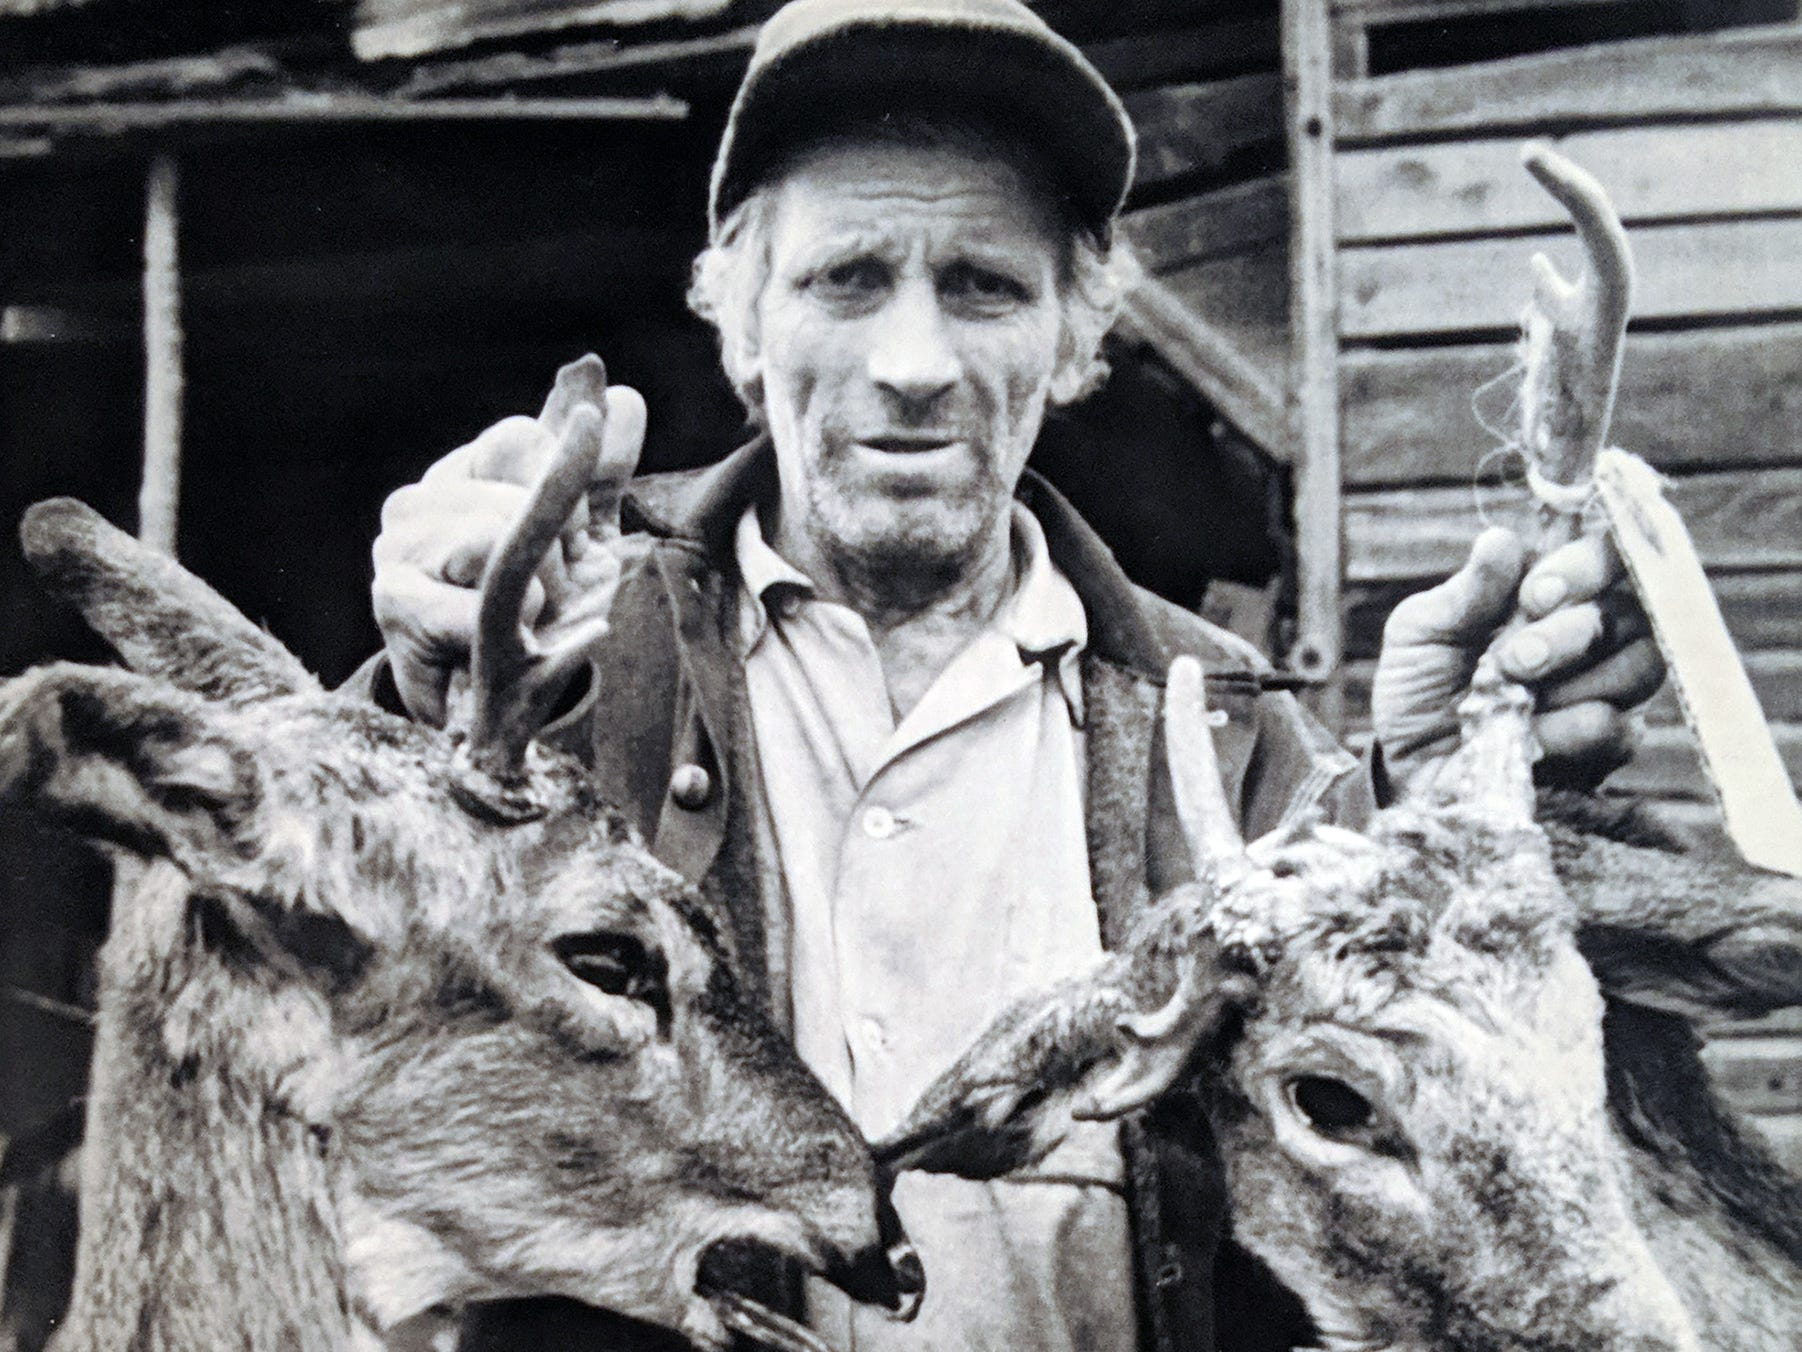 On the tenth anniversary of the Three Mile Island anniversary in March 1989, Paul Halowka, of Zion View, displays two deer whose antlers he believes were disfigured as a result of the nuclear incident.